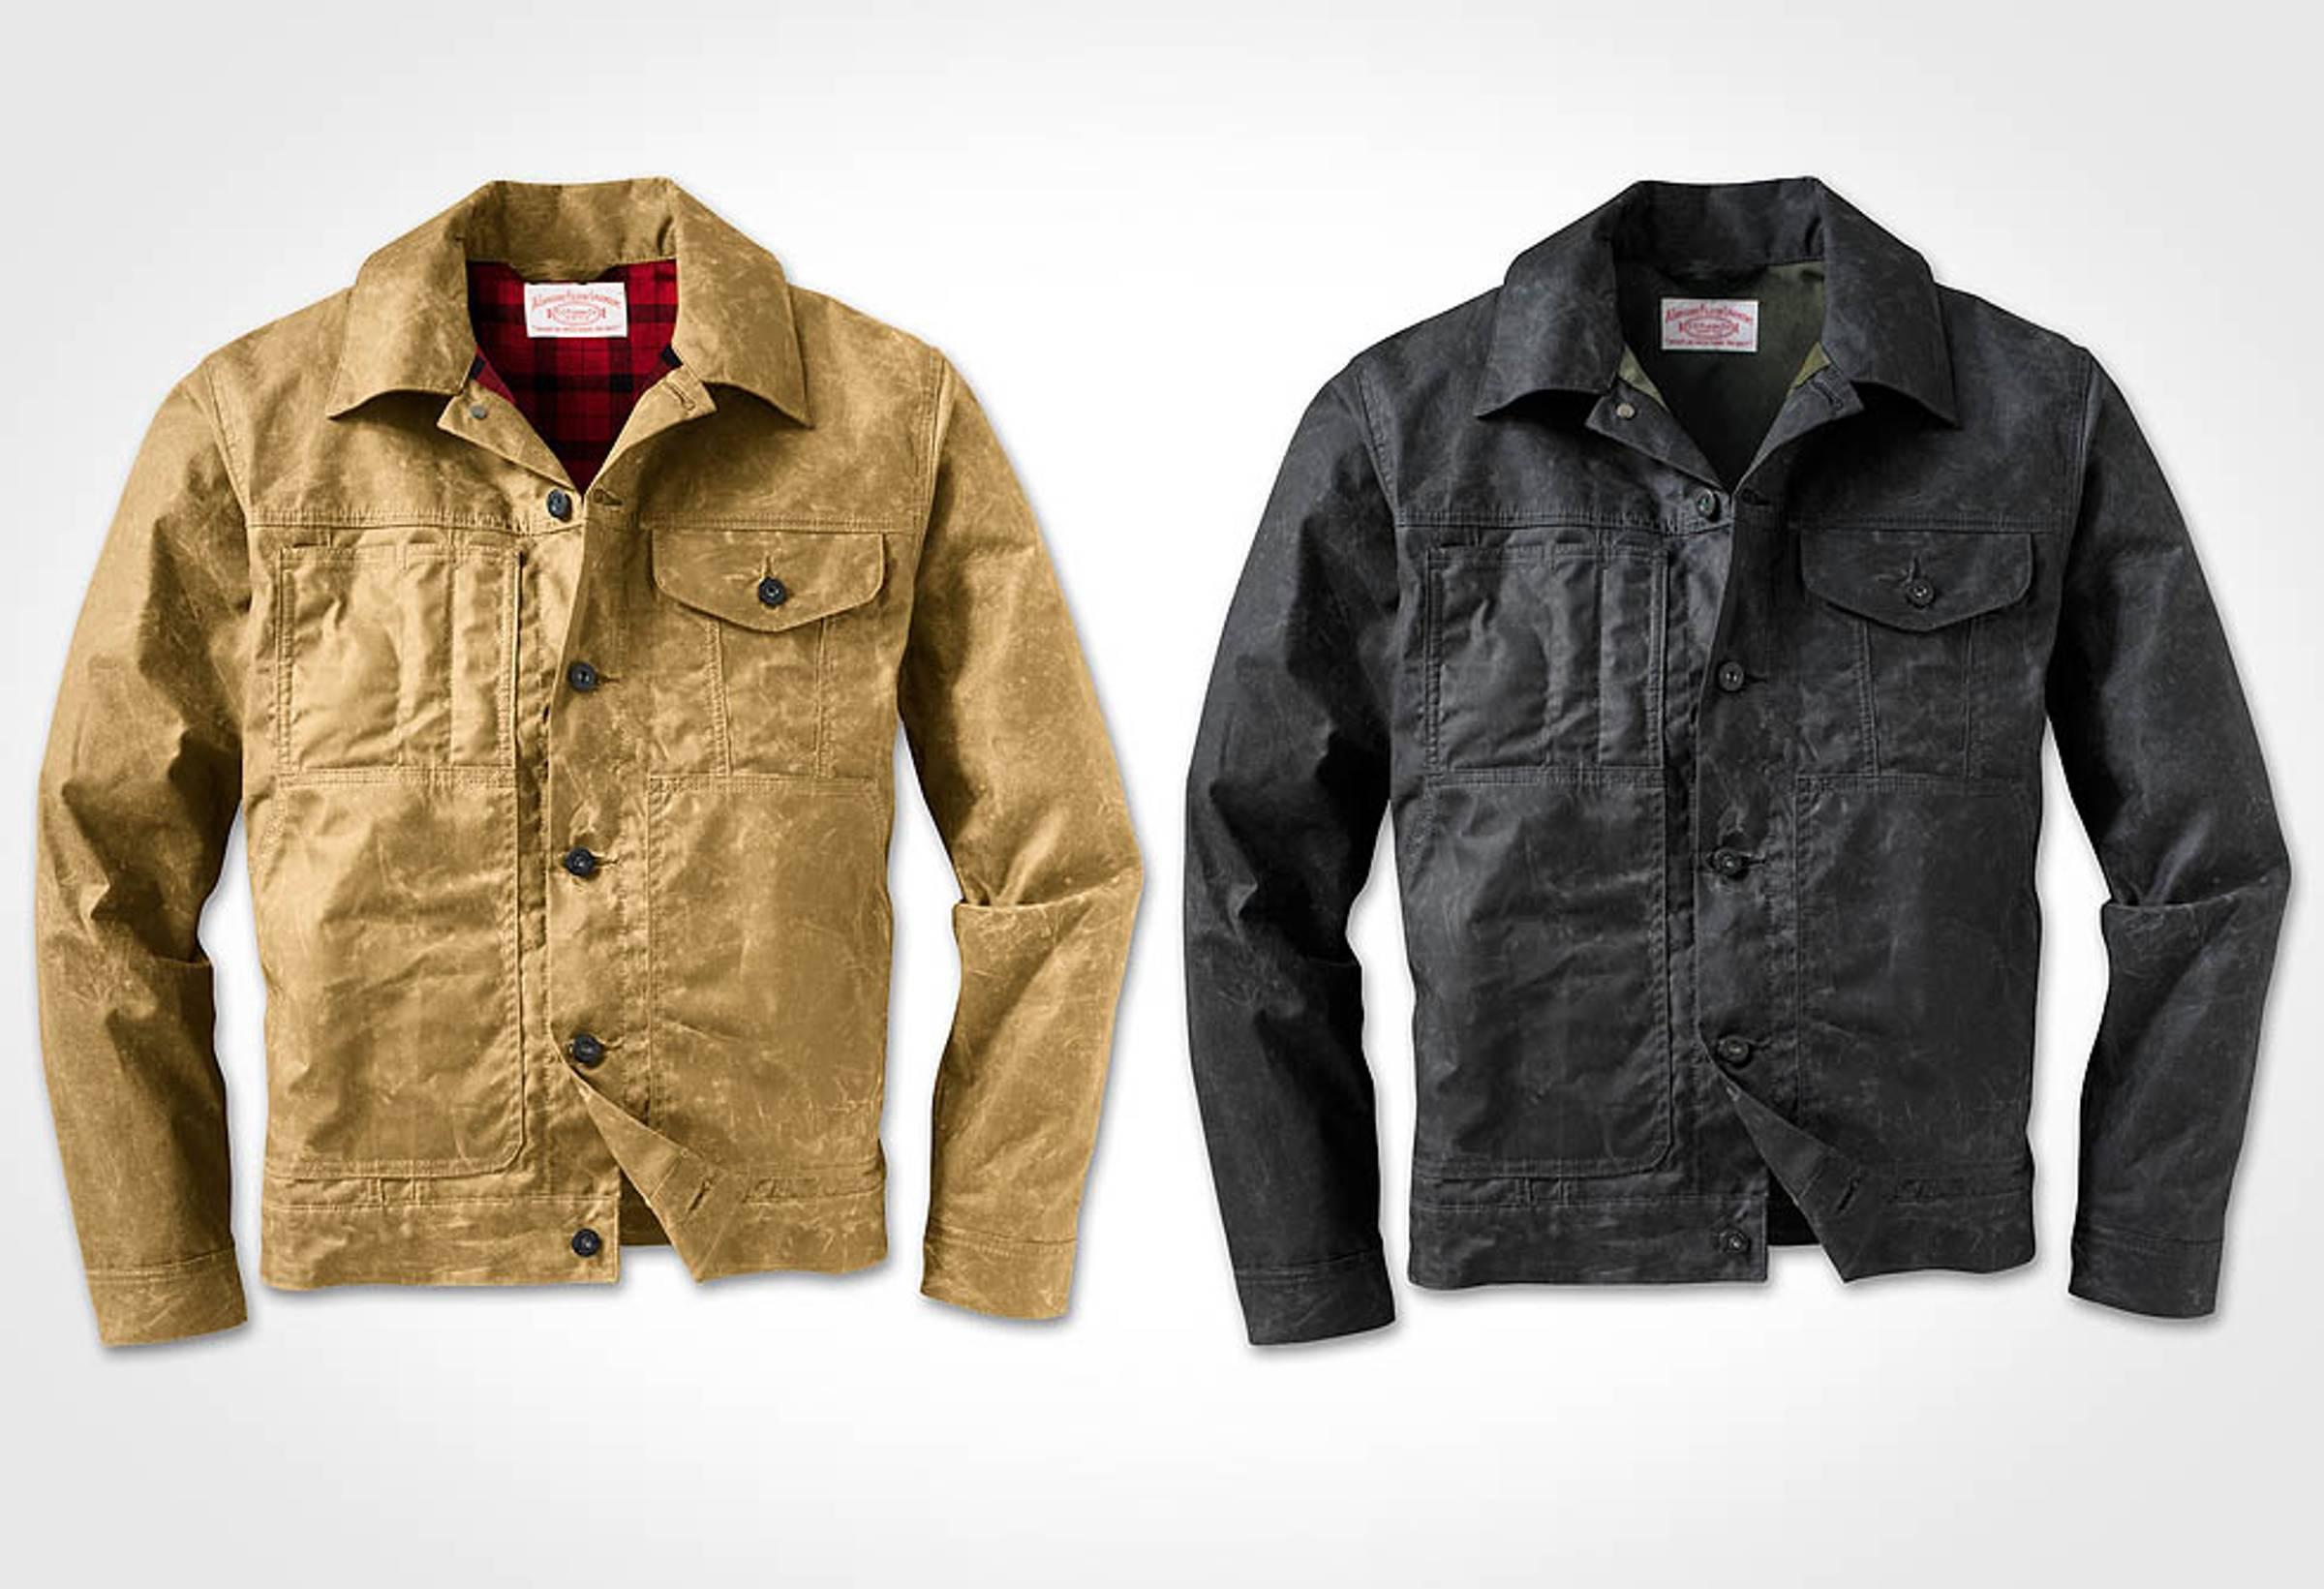 Filson: Built for the Great Outdoors